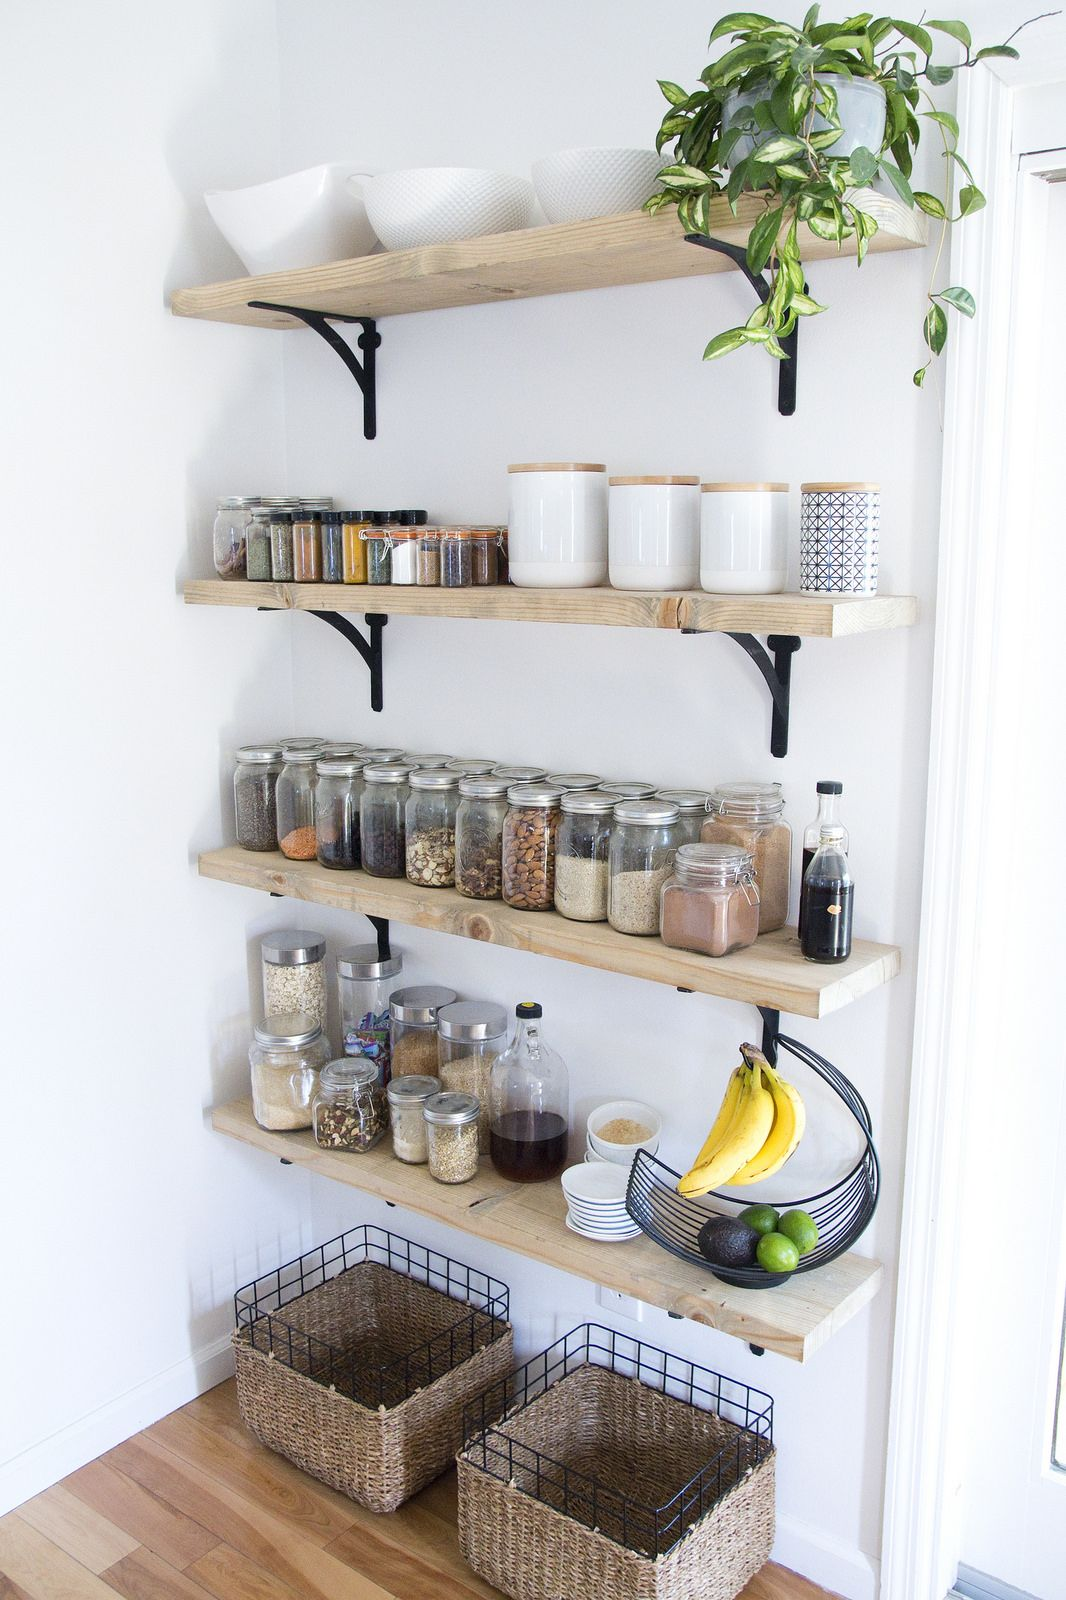 8 Tips For Creating Successful Open Shelving And A Pantry Via